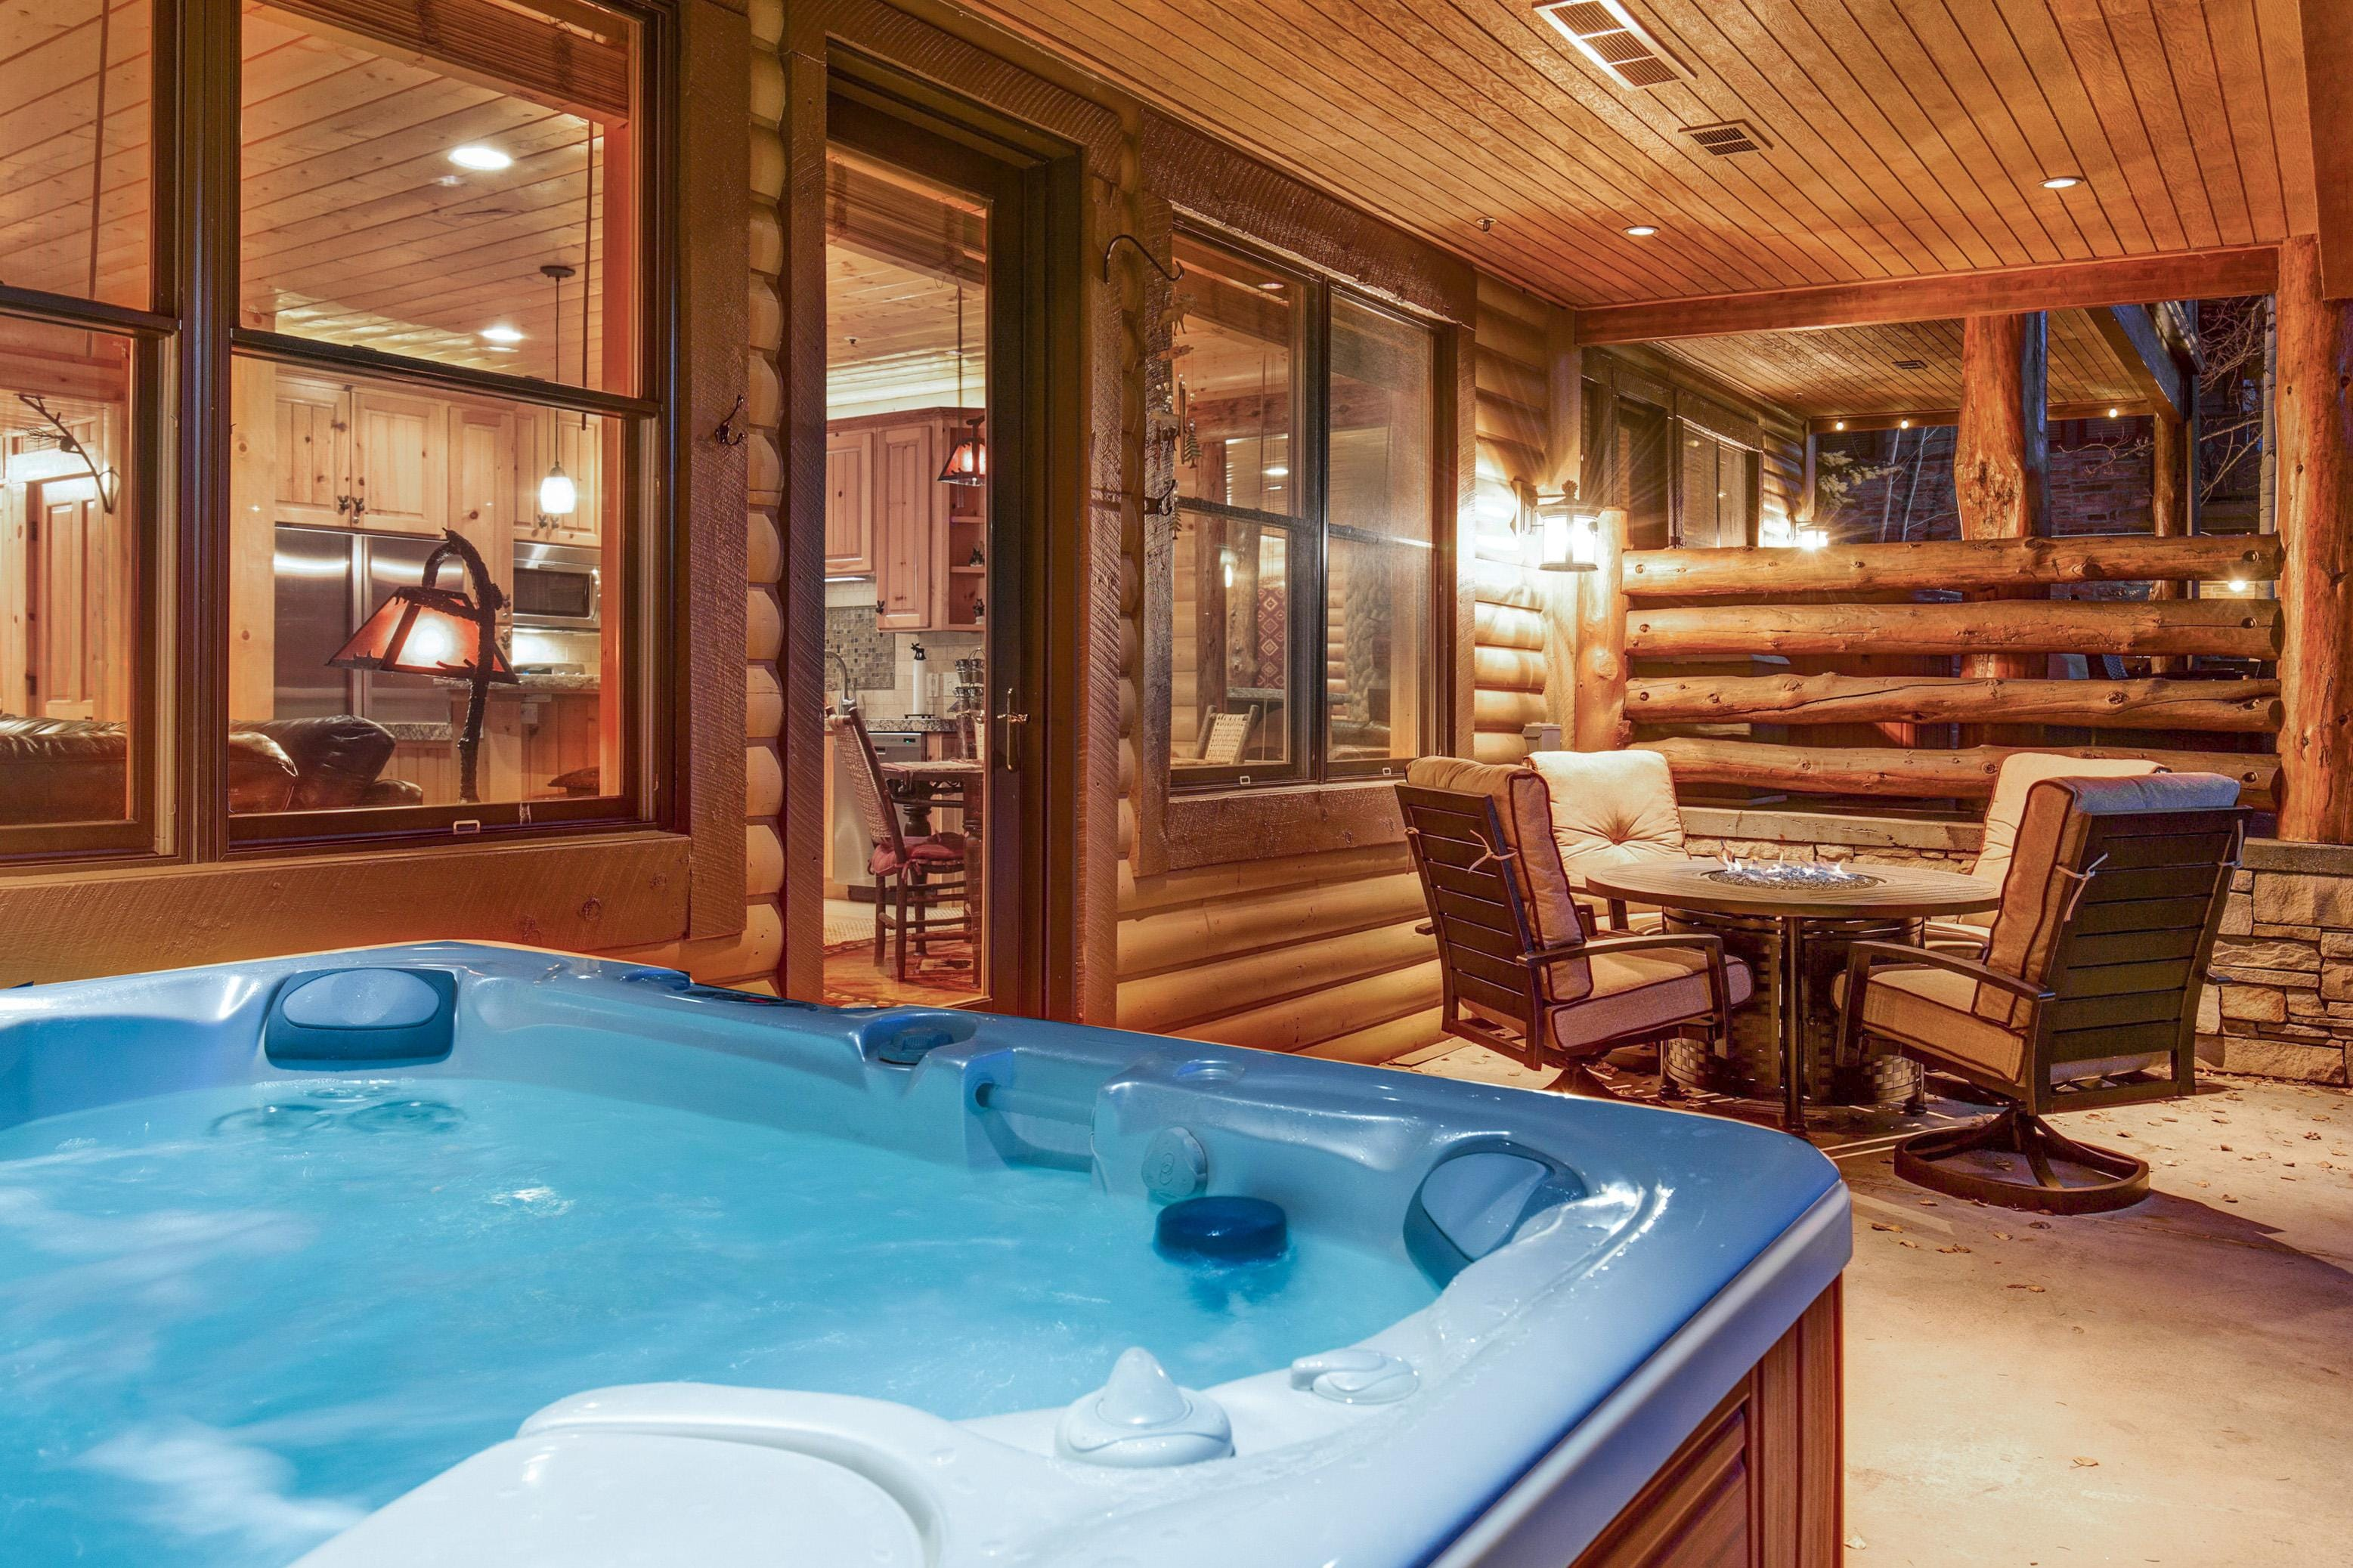 Slip into the hot tub on the back patio for ultimate relaxation.